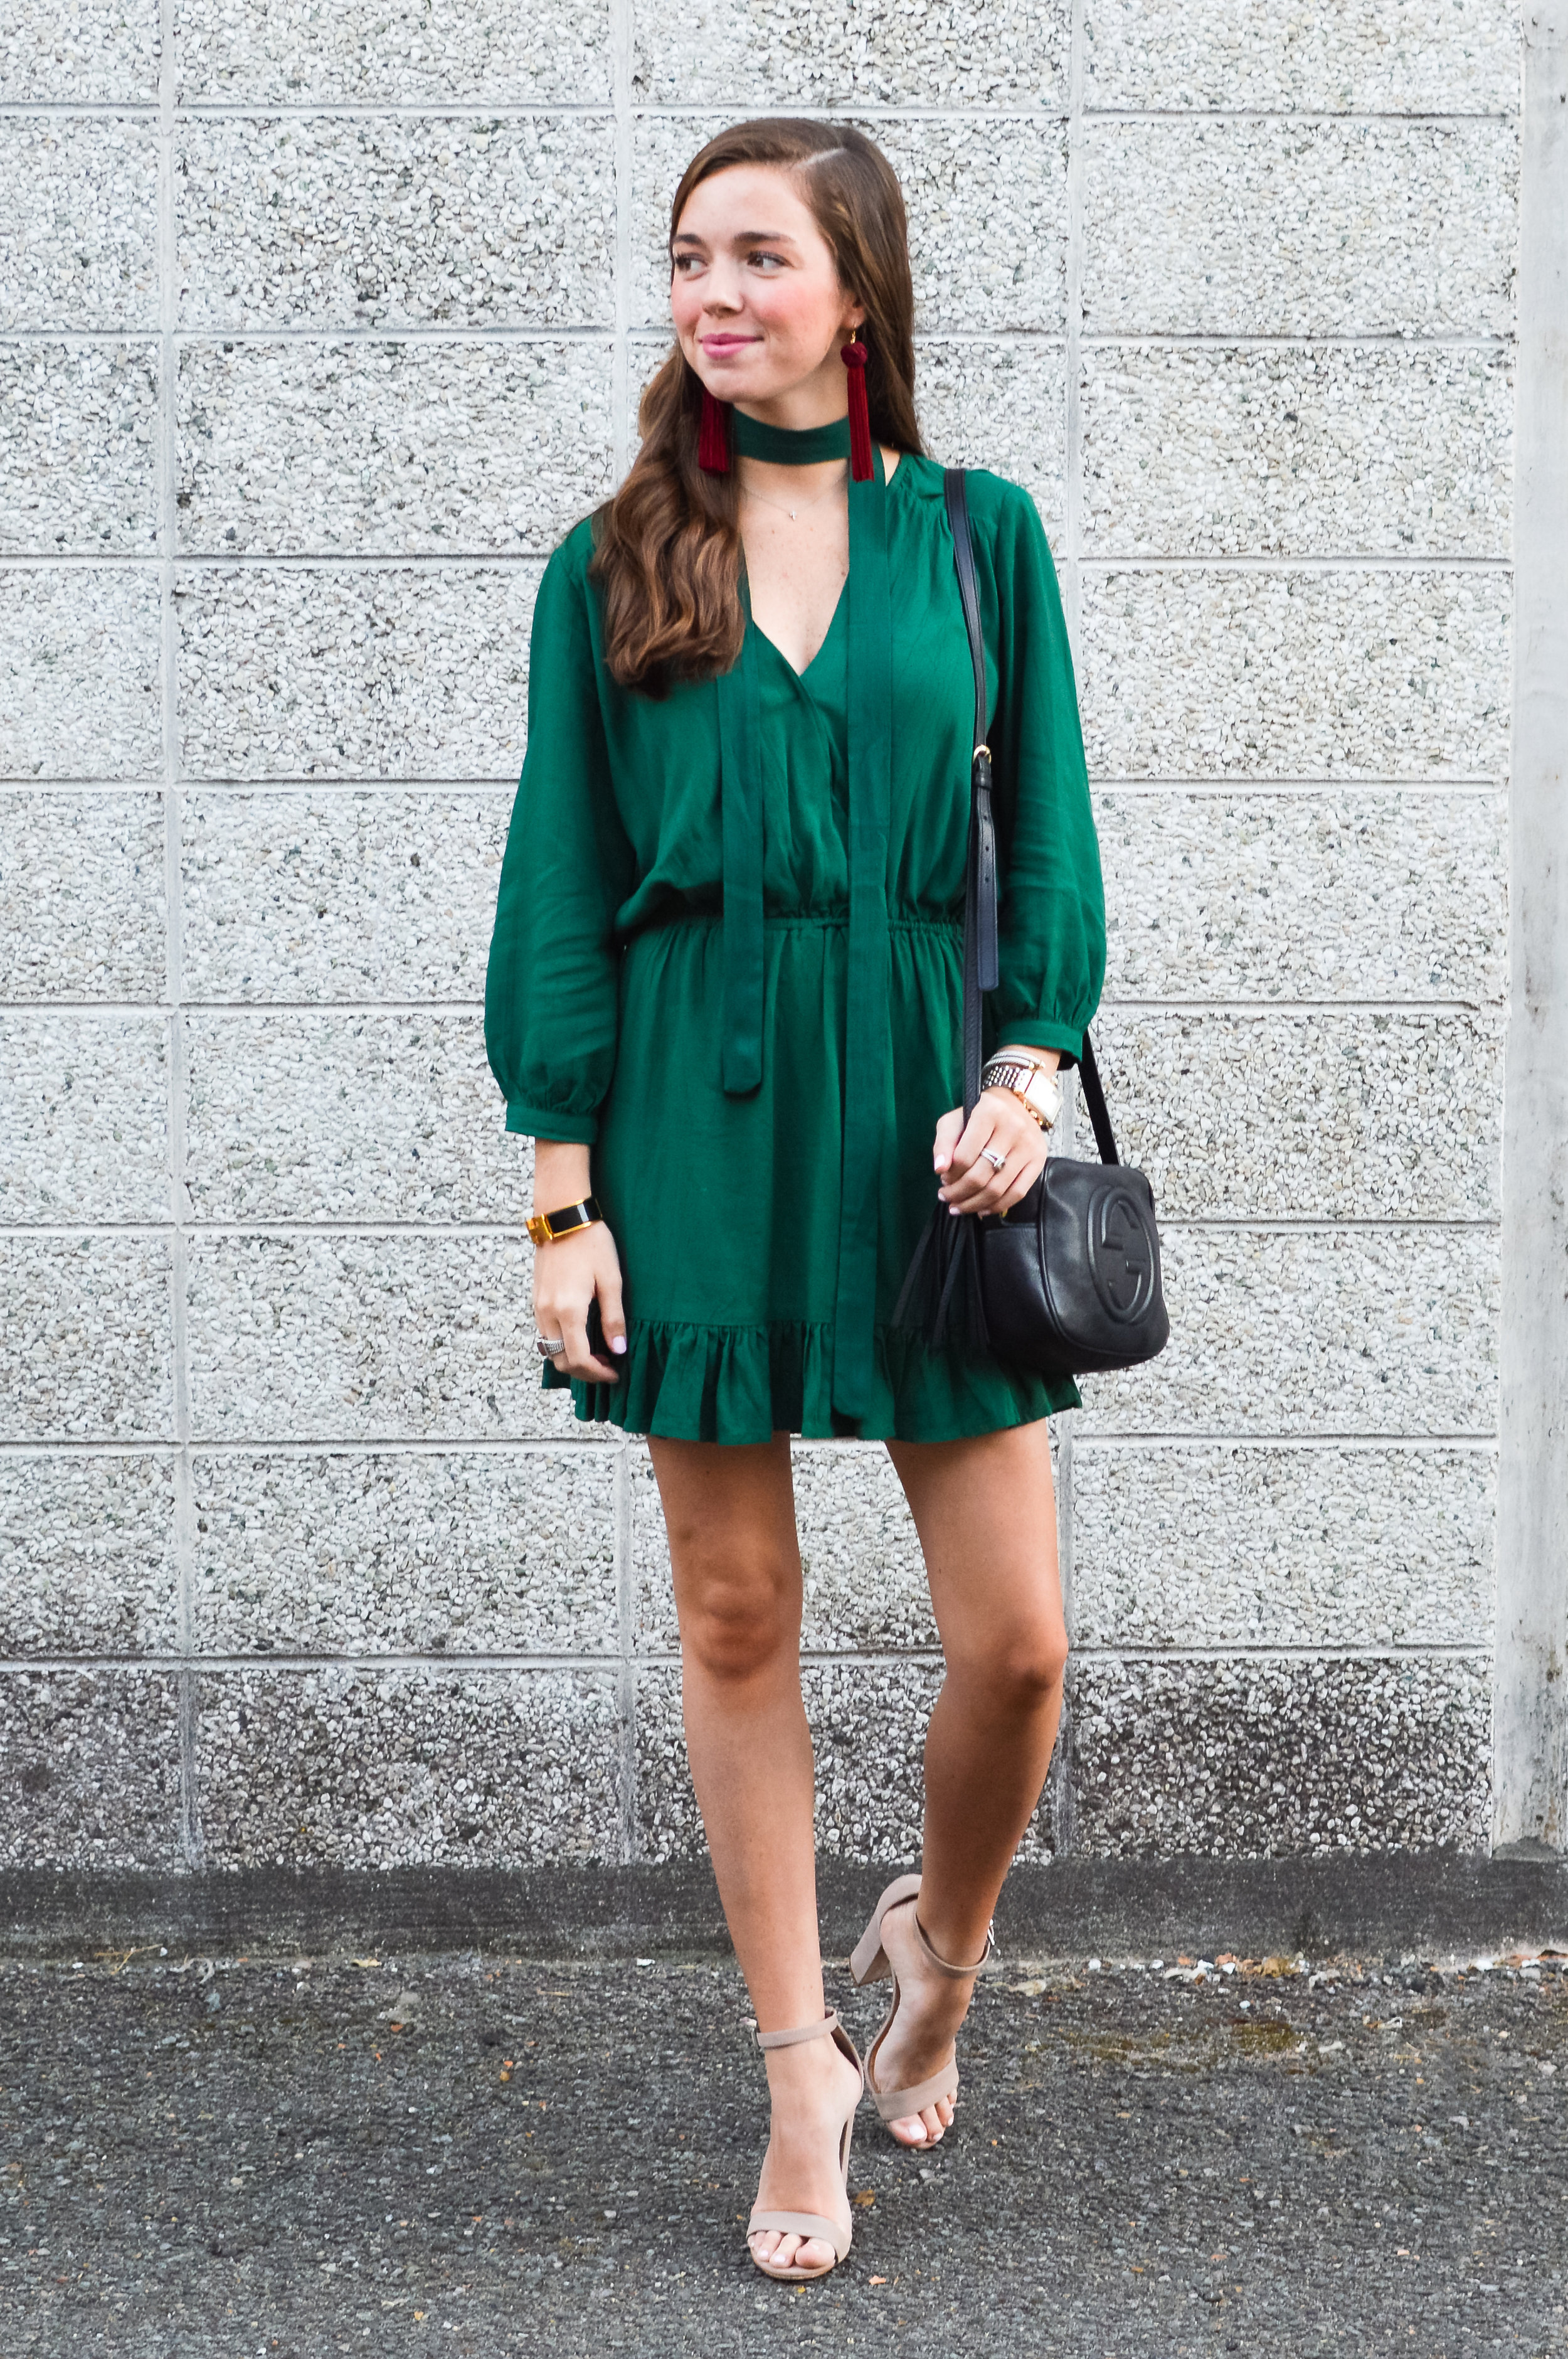 fashion blogger lcb style green dress tassel earring  (12 of 30).jpg